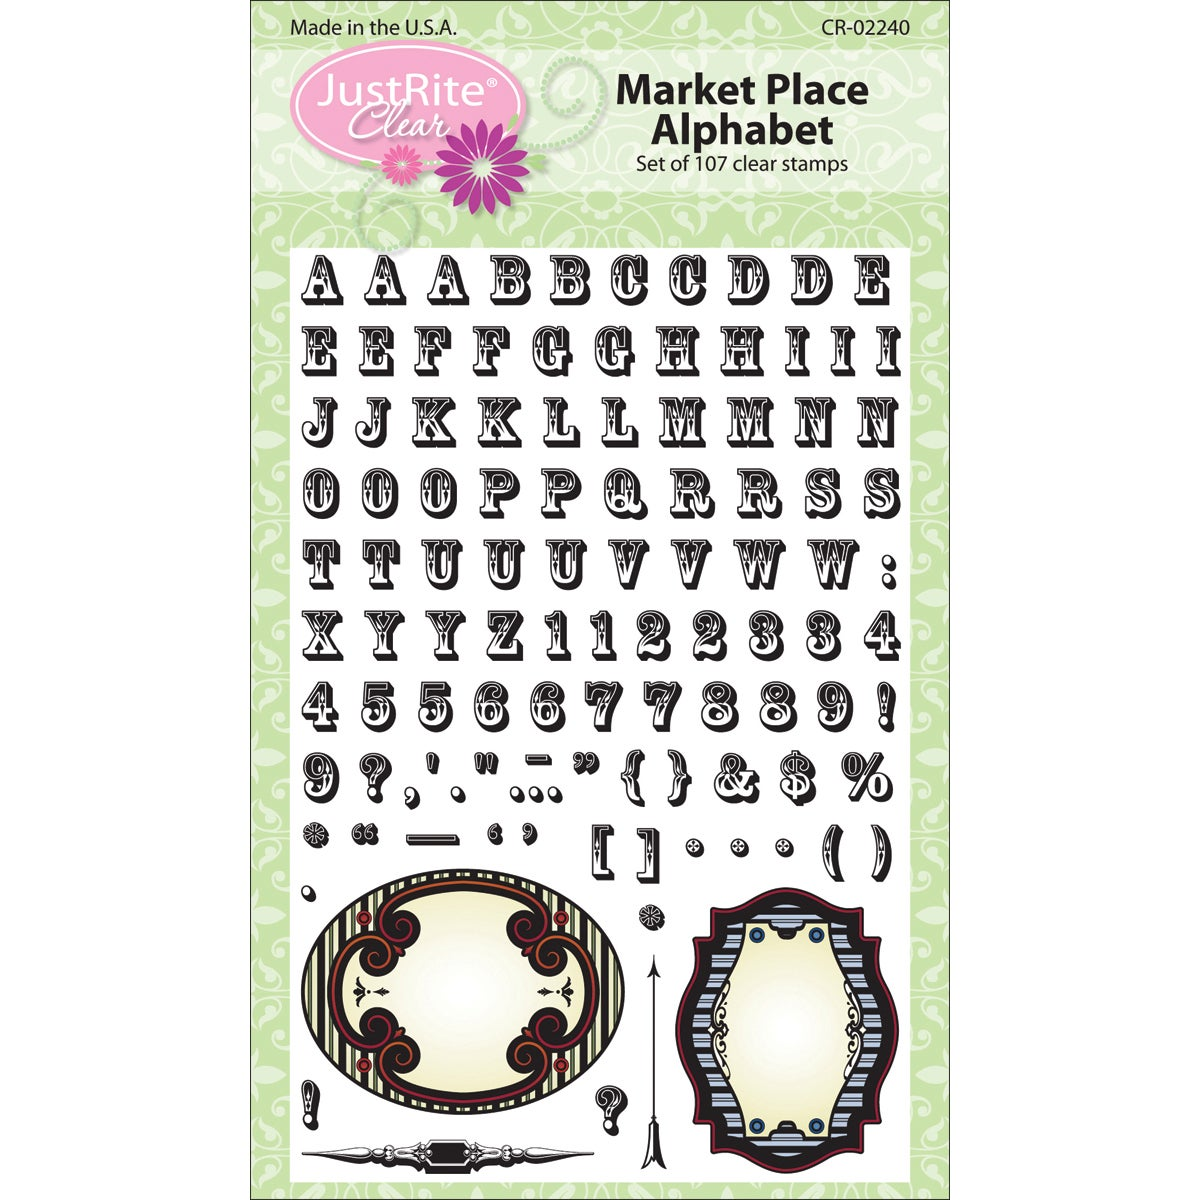 JustRite Stampers Clear Stamp Sets-Market Place Alphabet 107pc